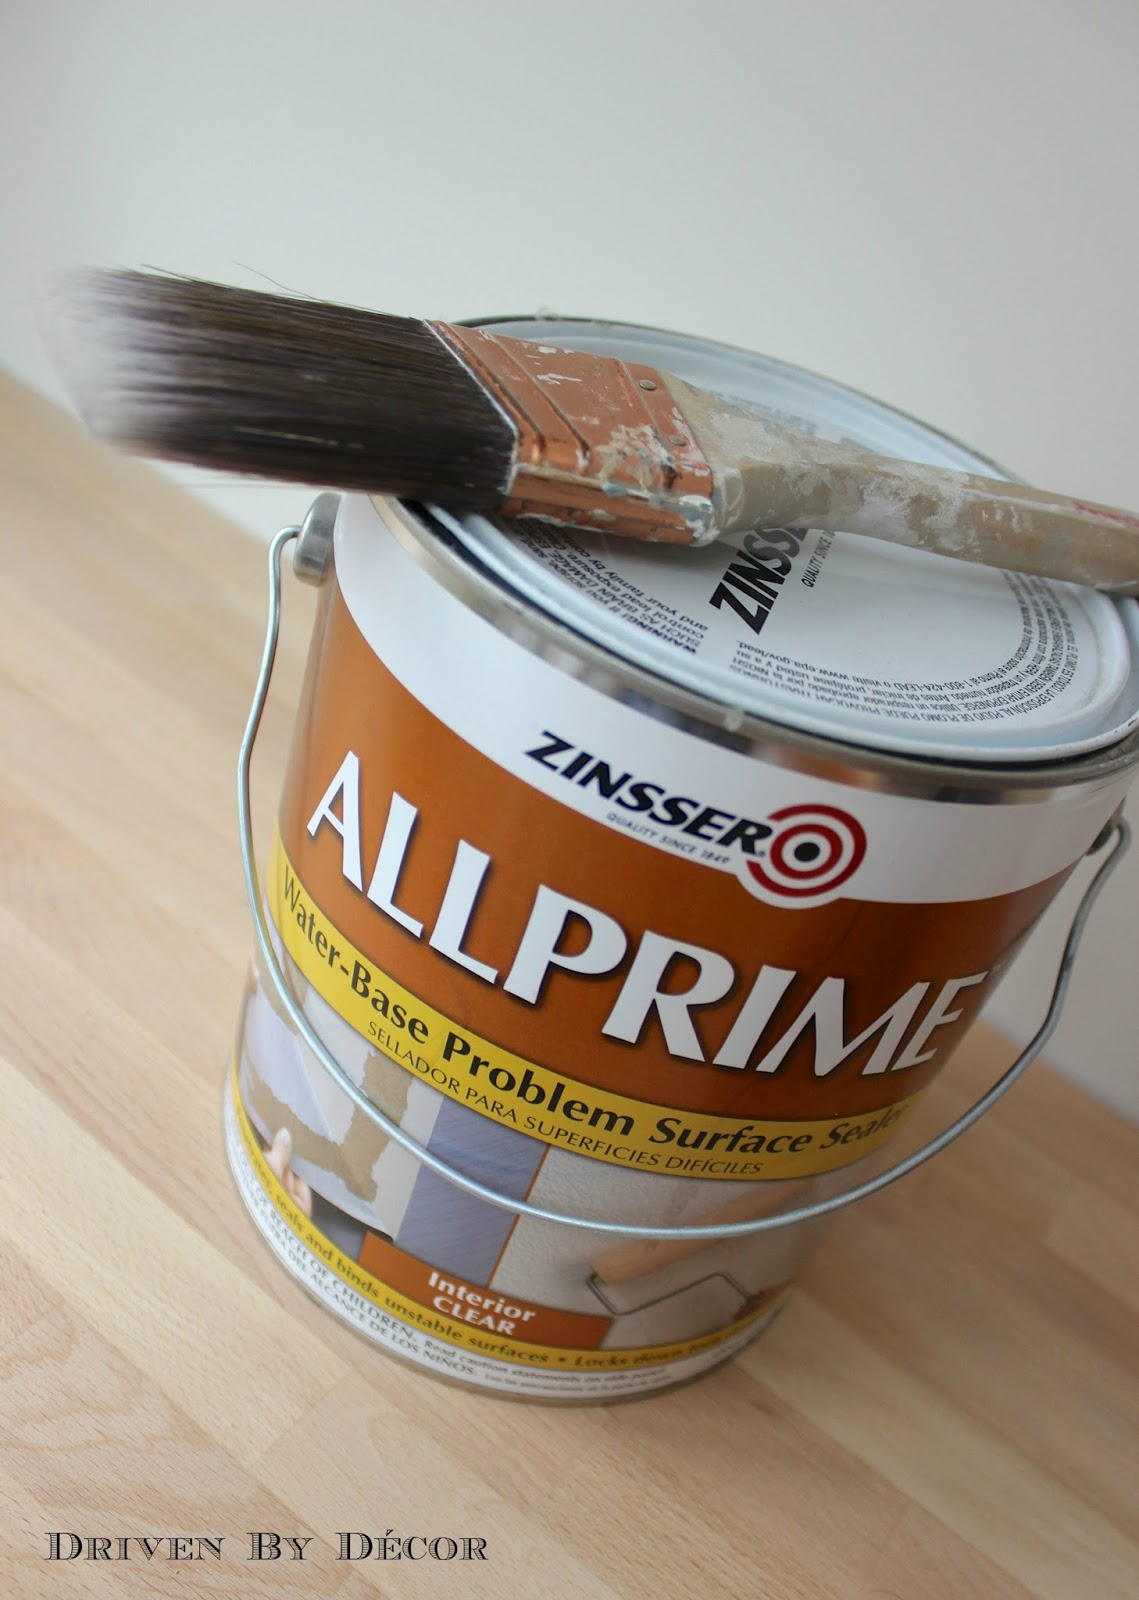 If you're painting over wallpaper glue - use this first!!